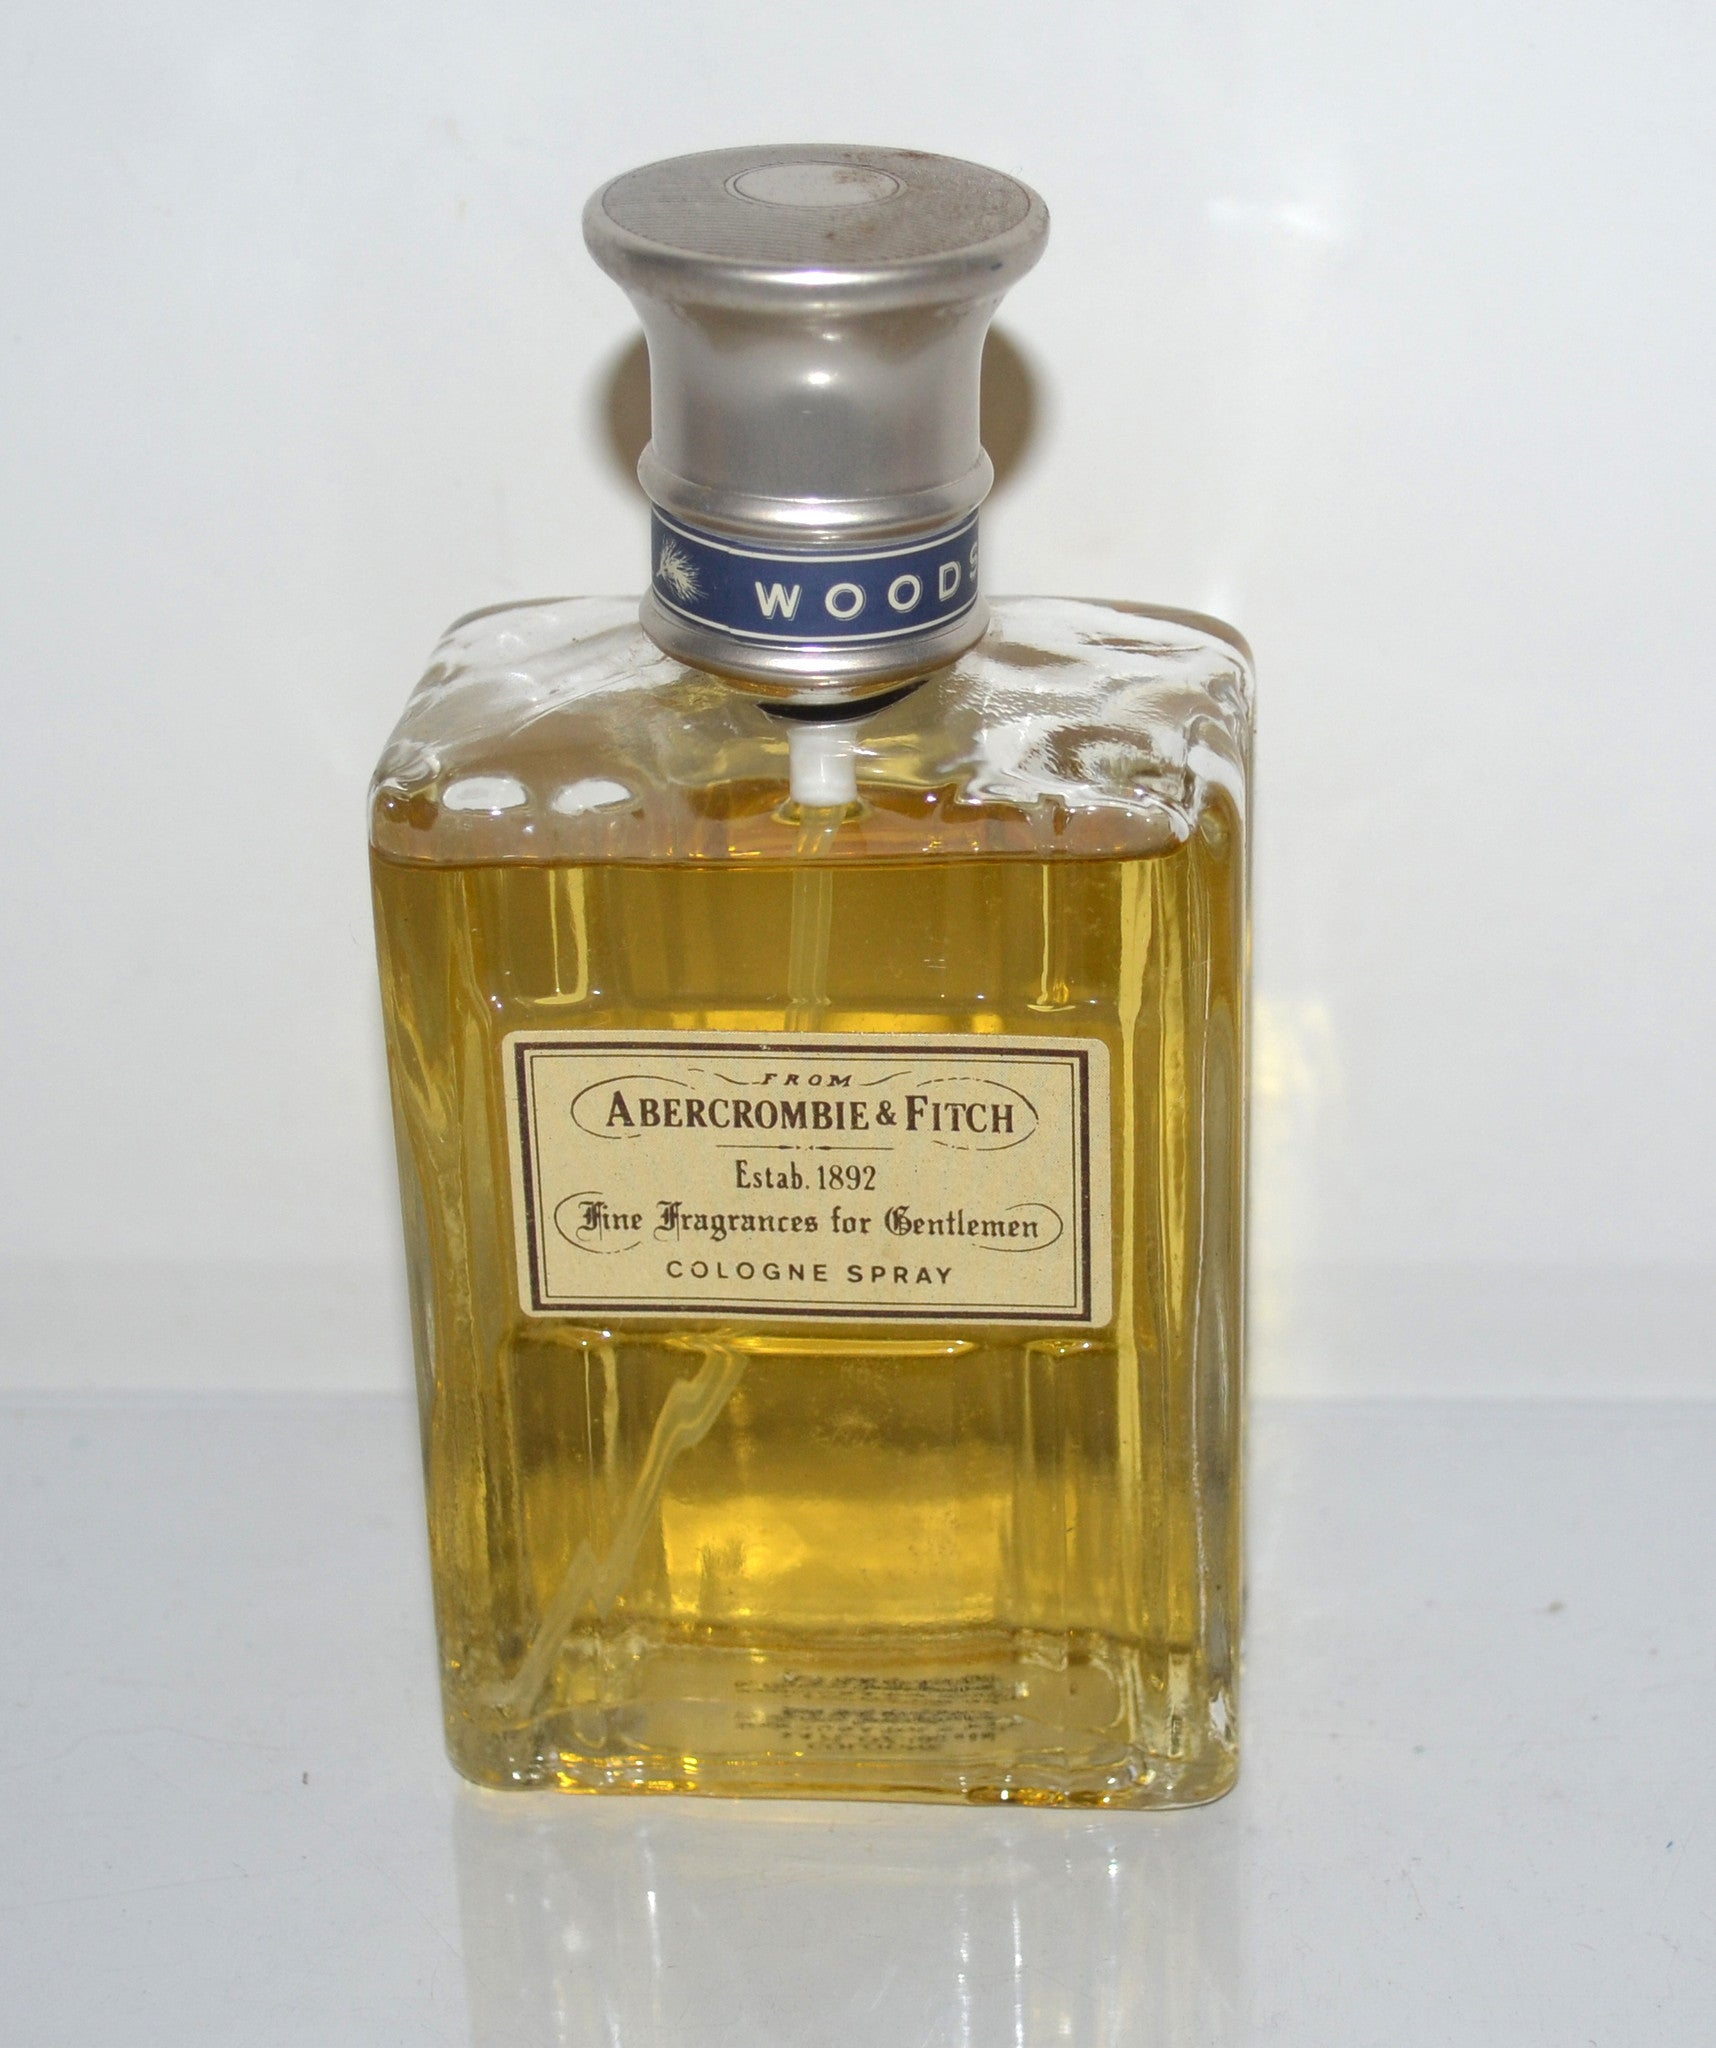 Abercrombie & Fitch Woods Cologne Spray